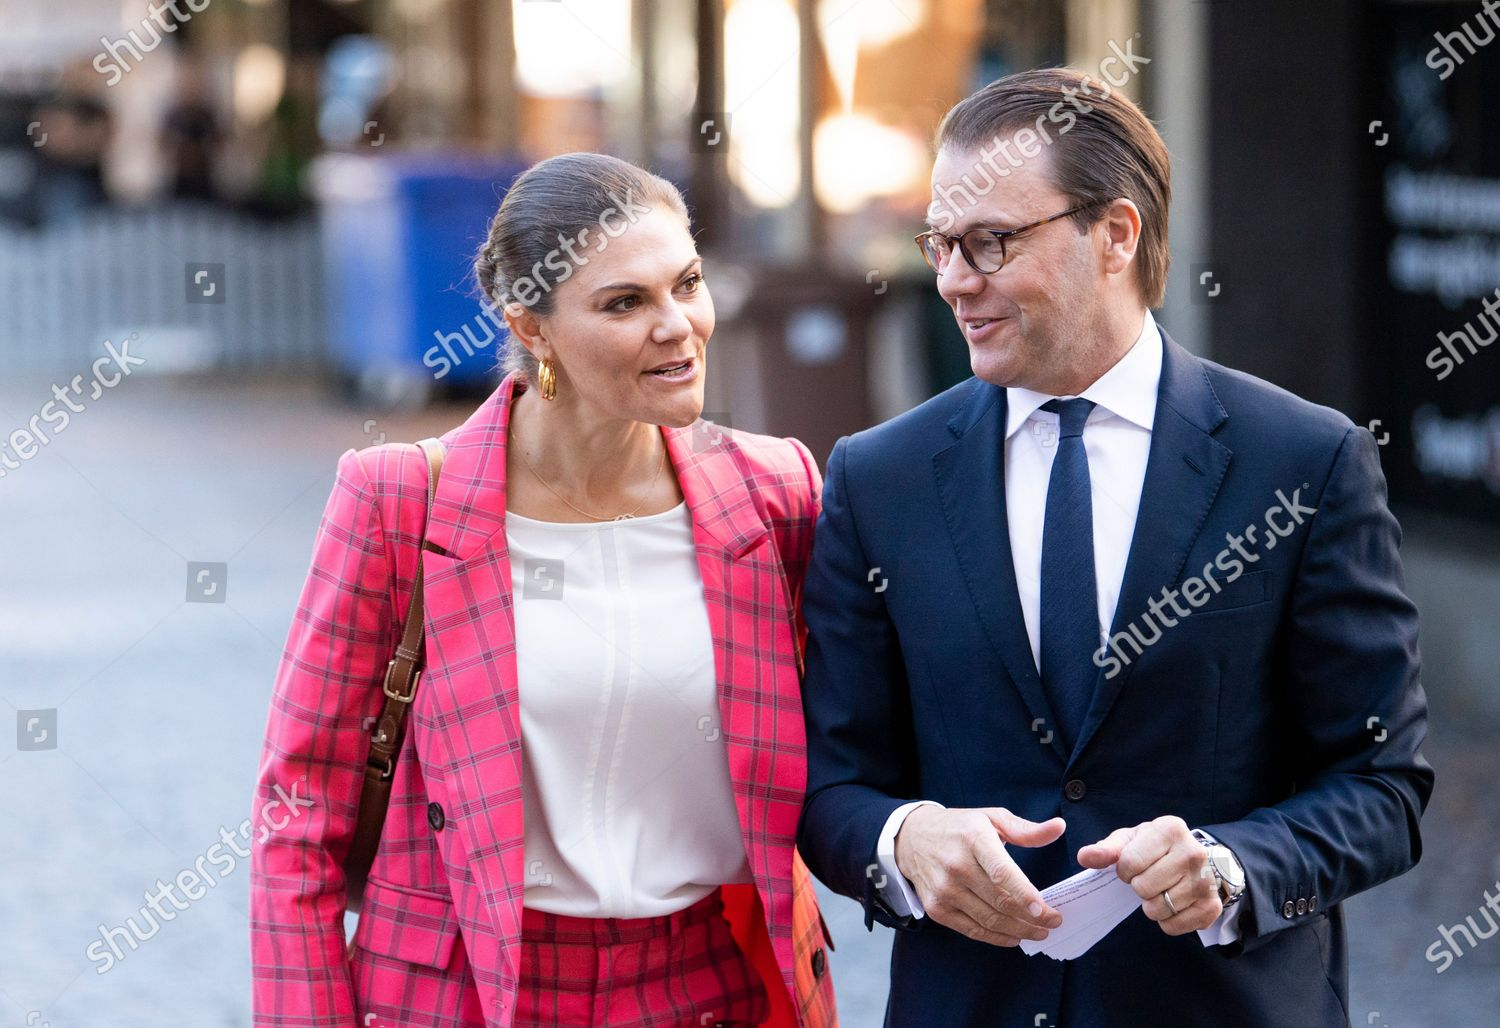 crown-princess-victoria-and-prince-daniel-visit-to-gavle-sweden-shutterstock-editorial-10773227aa.jpg